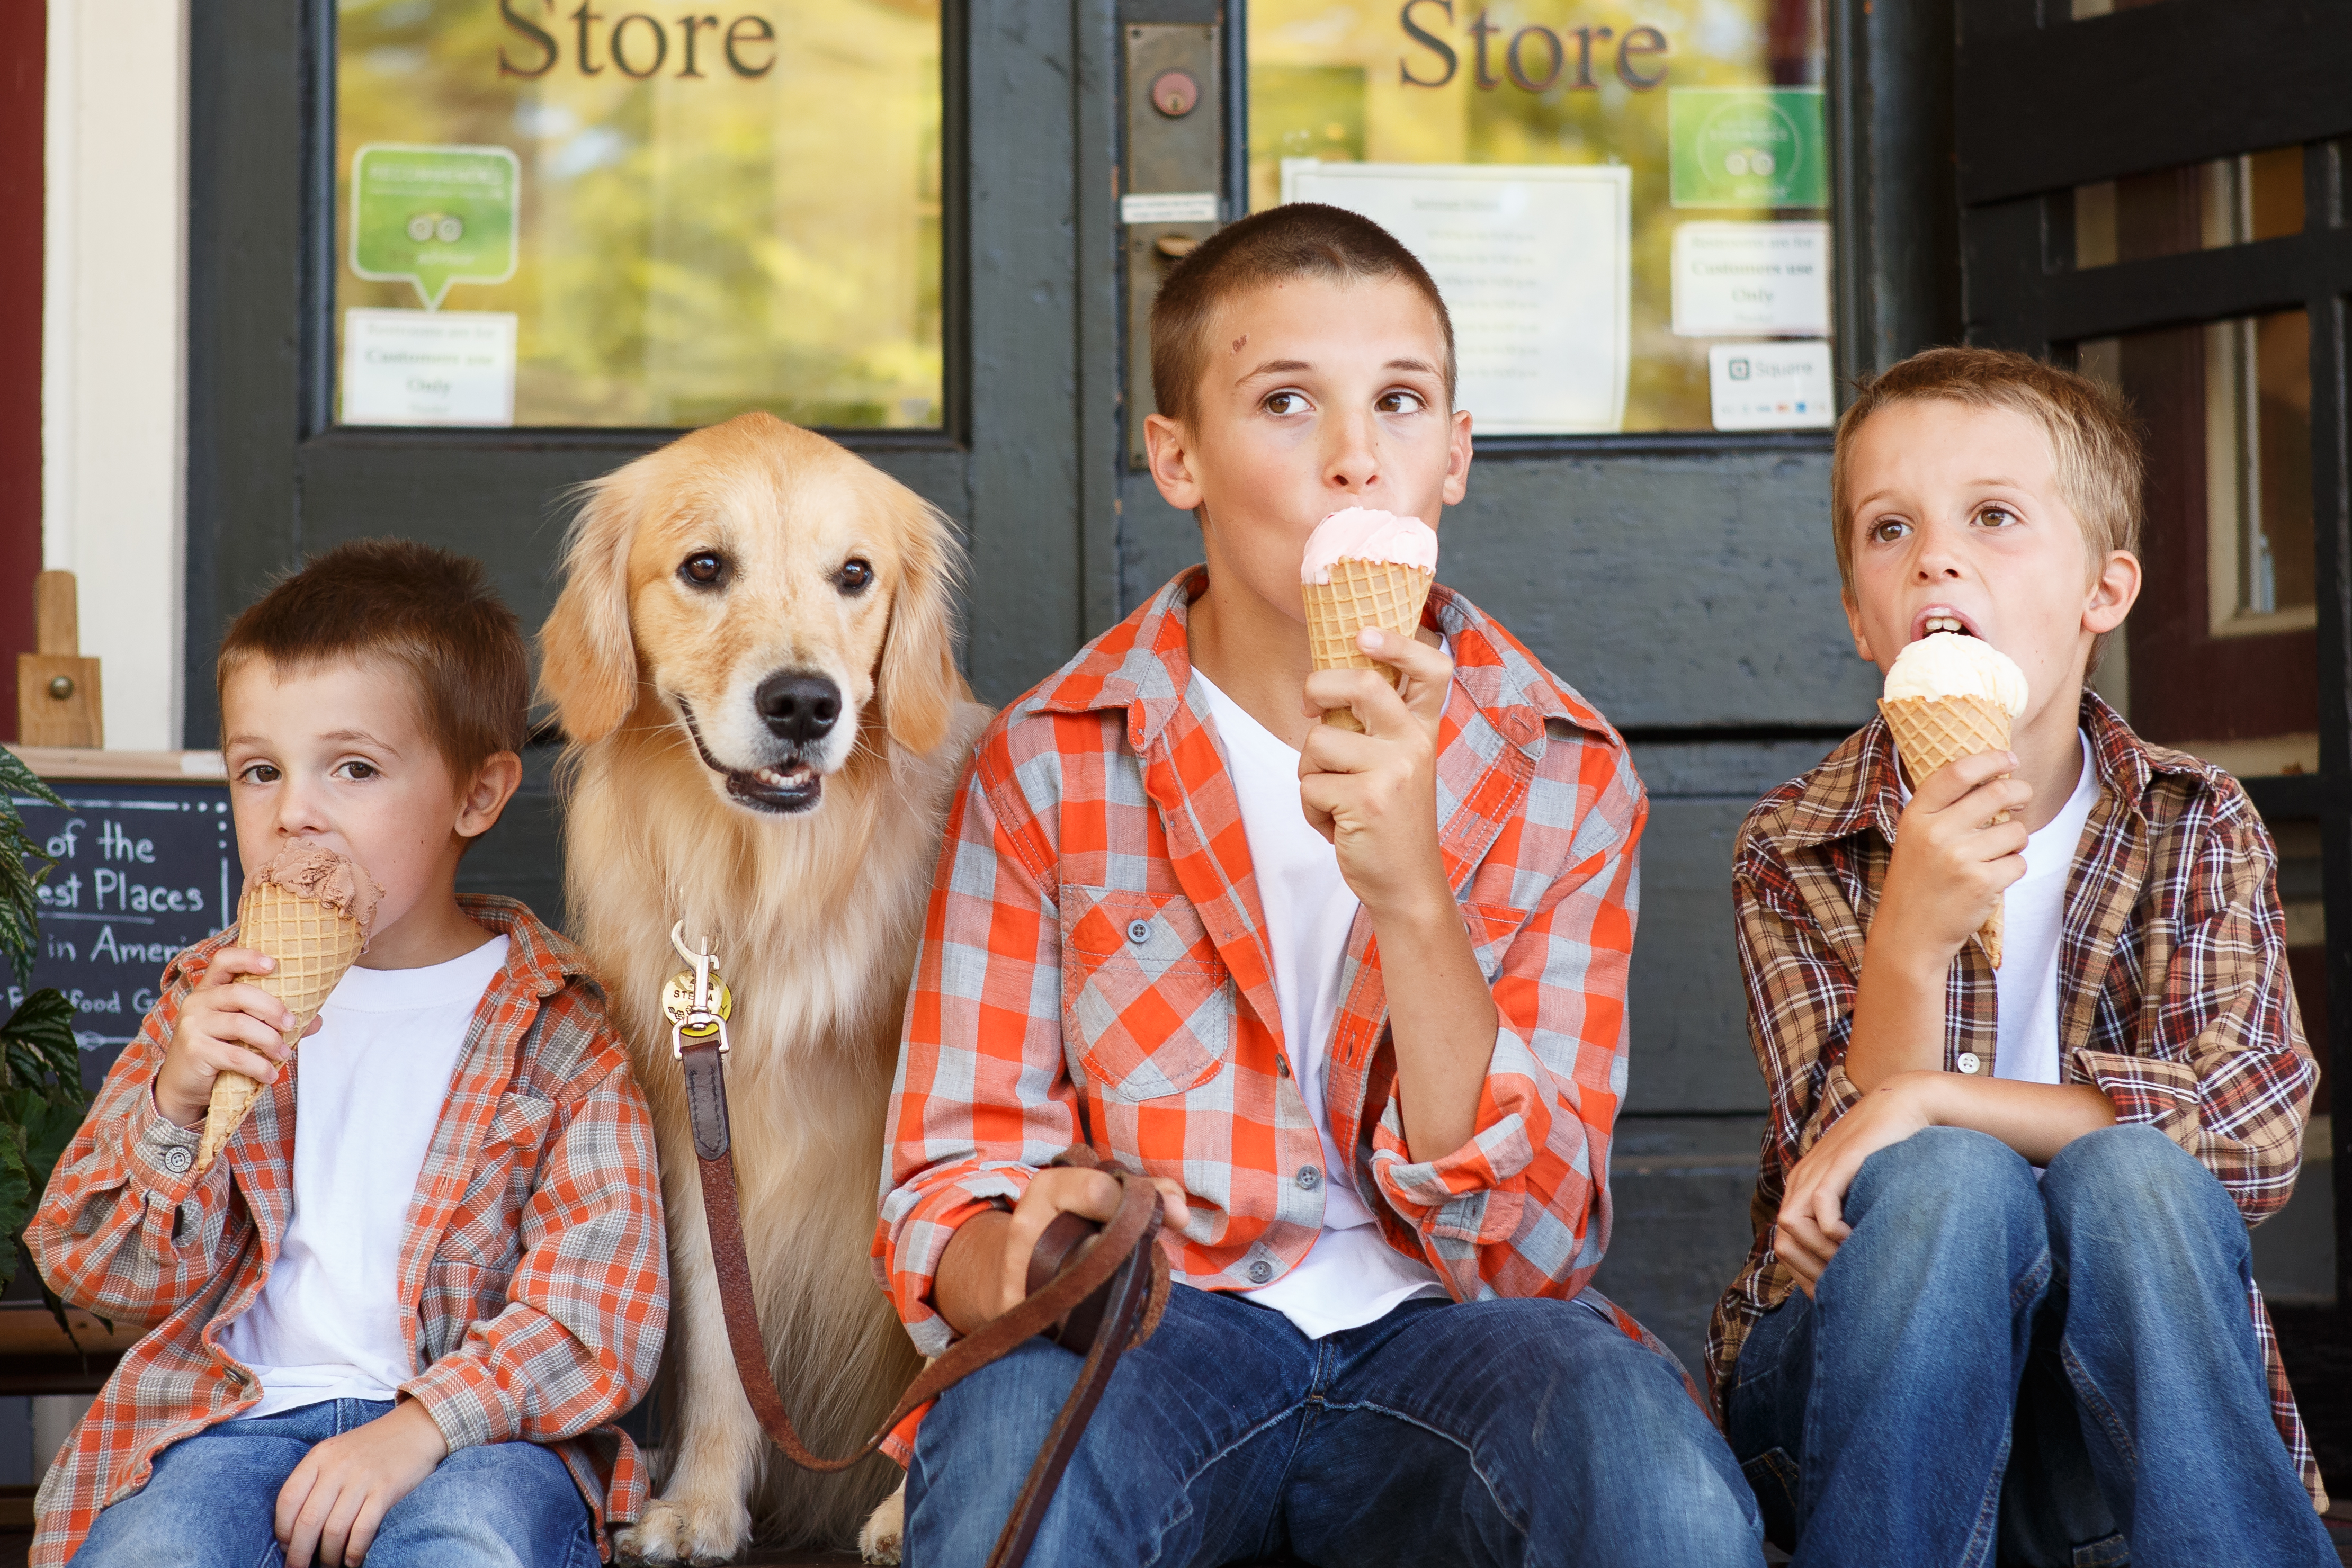 children eating ice cream with dog stockholm wisconsin-6514 - Copy - Copy